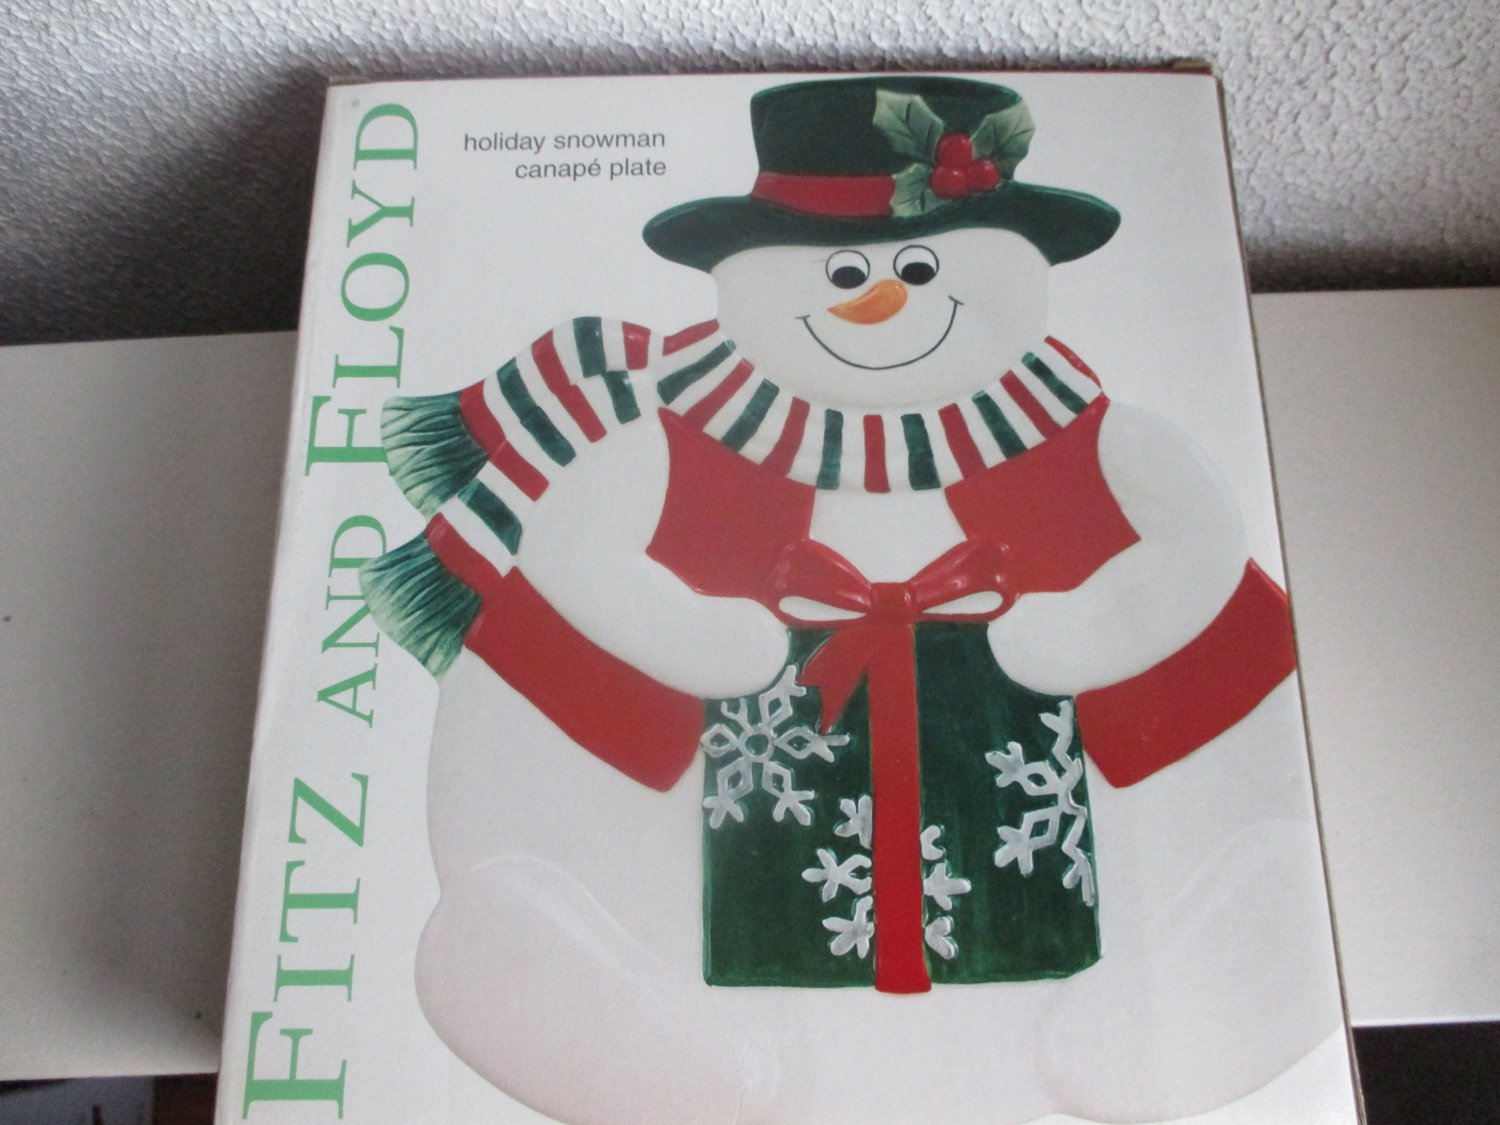 Fitz and floyd holiday snowman canape plate for Fitz and floyd canape plate